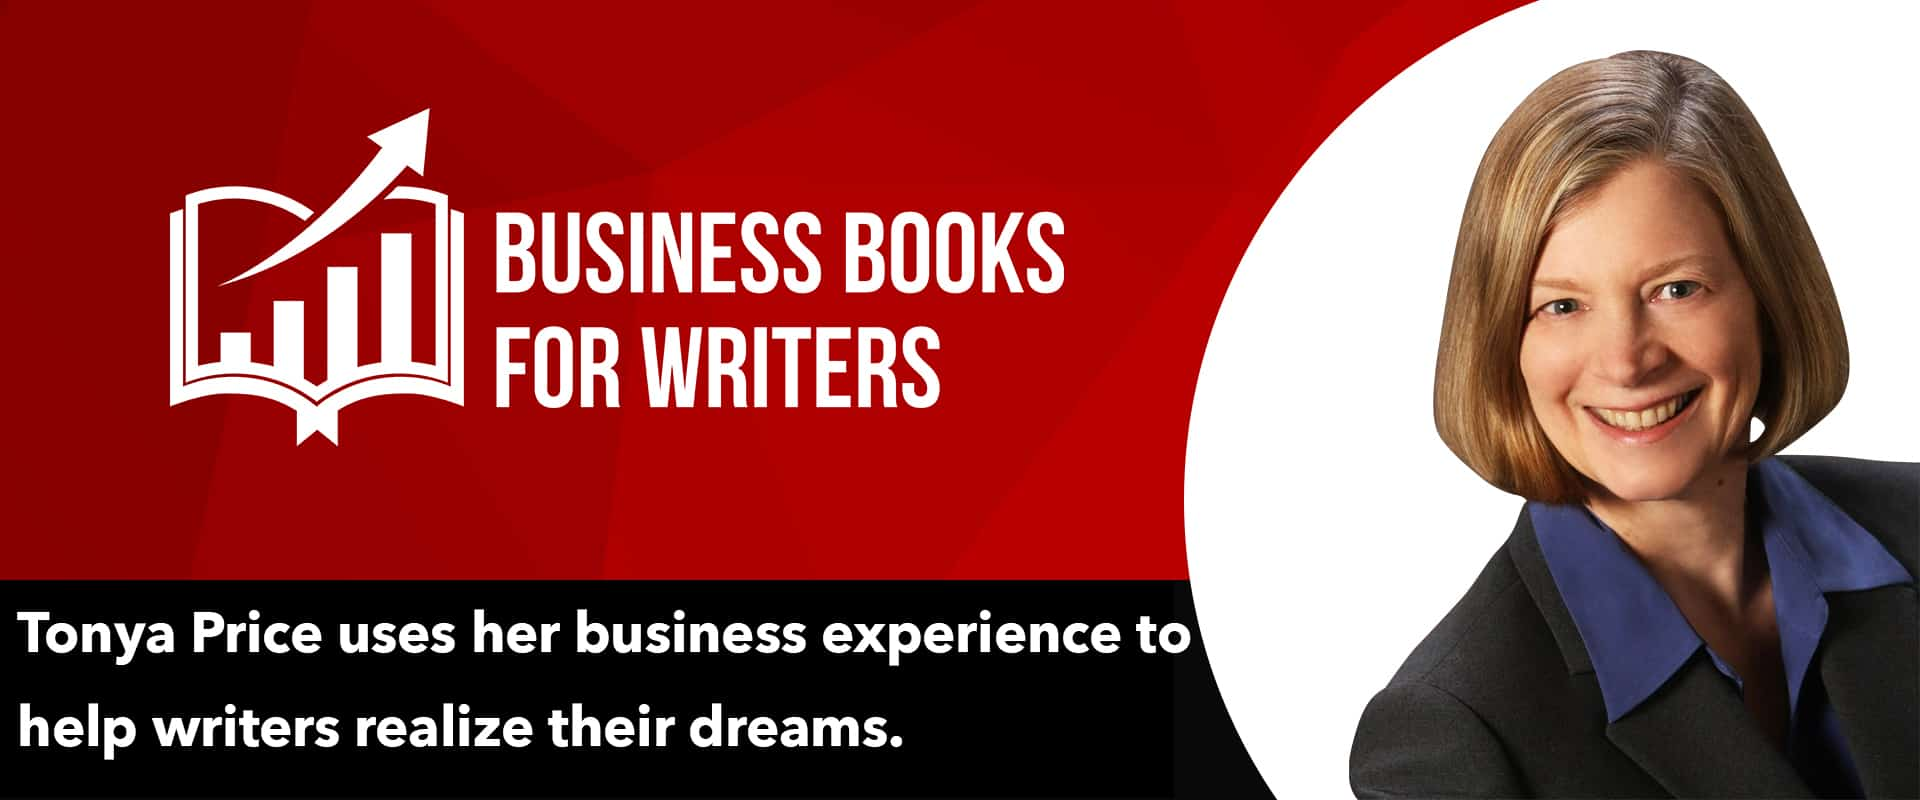 Tonya D. Price, MBA, founder of Business Books for Writers.